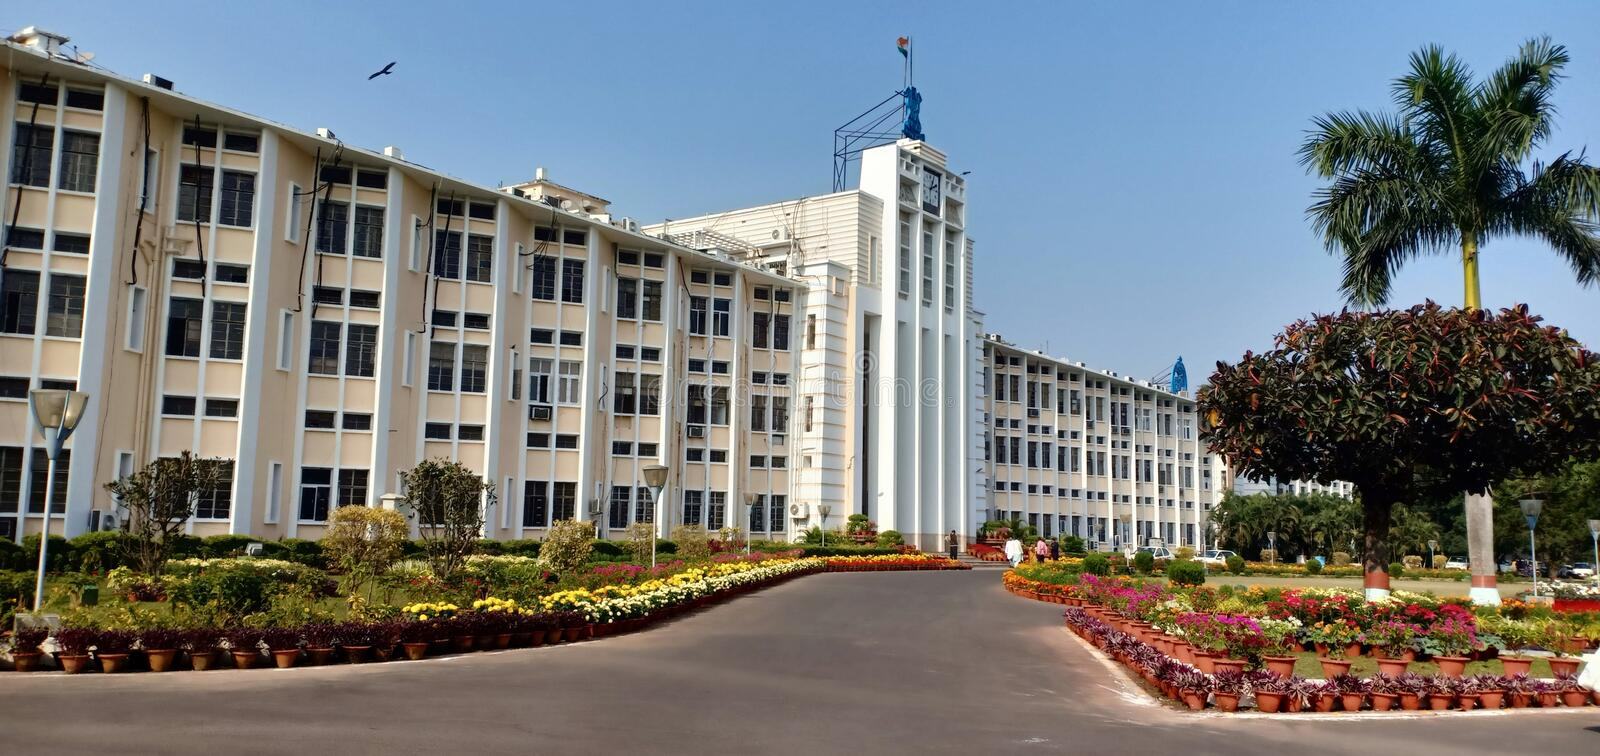 Odisha Sachibalaya main building Bhubaneswar India. Entrance for Chip Minister and VIP persons stock photo